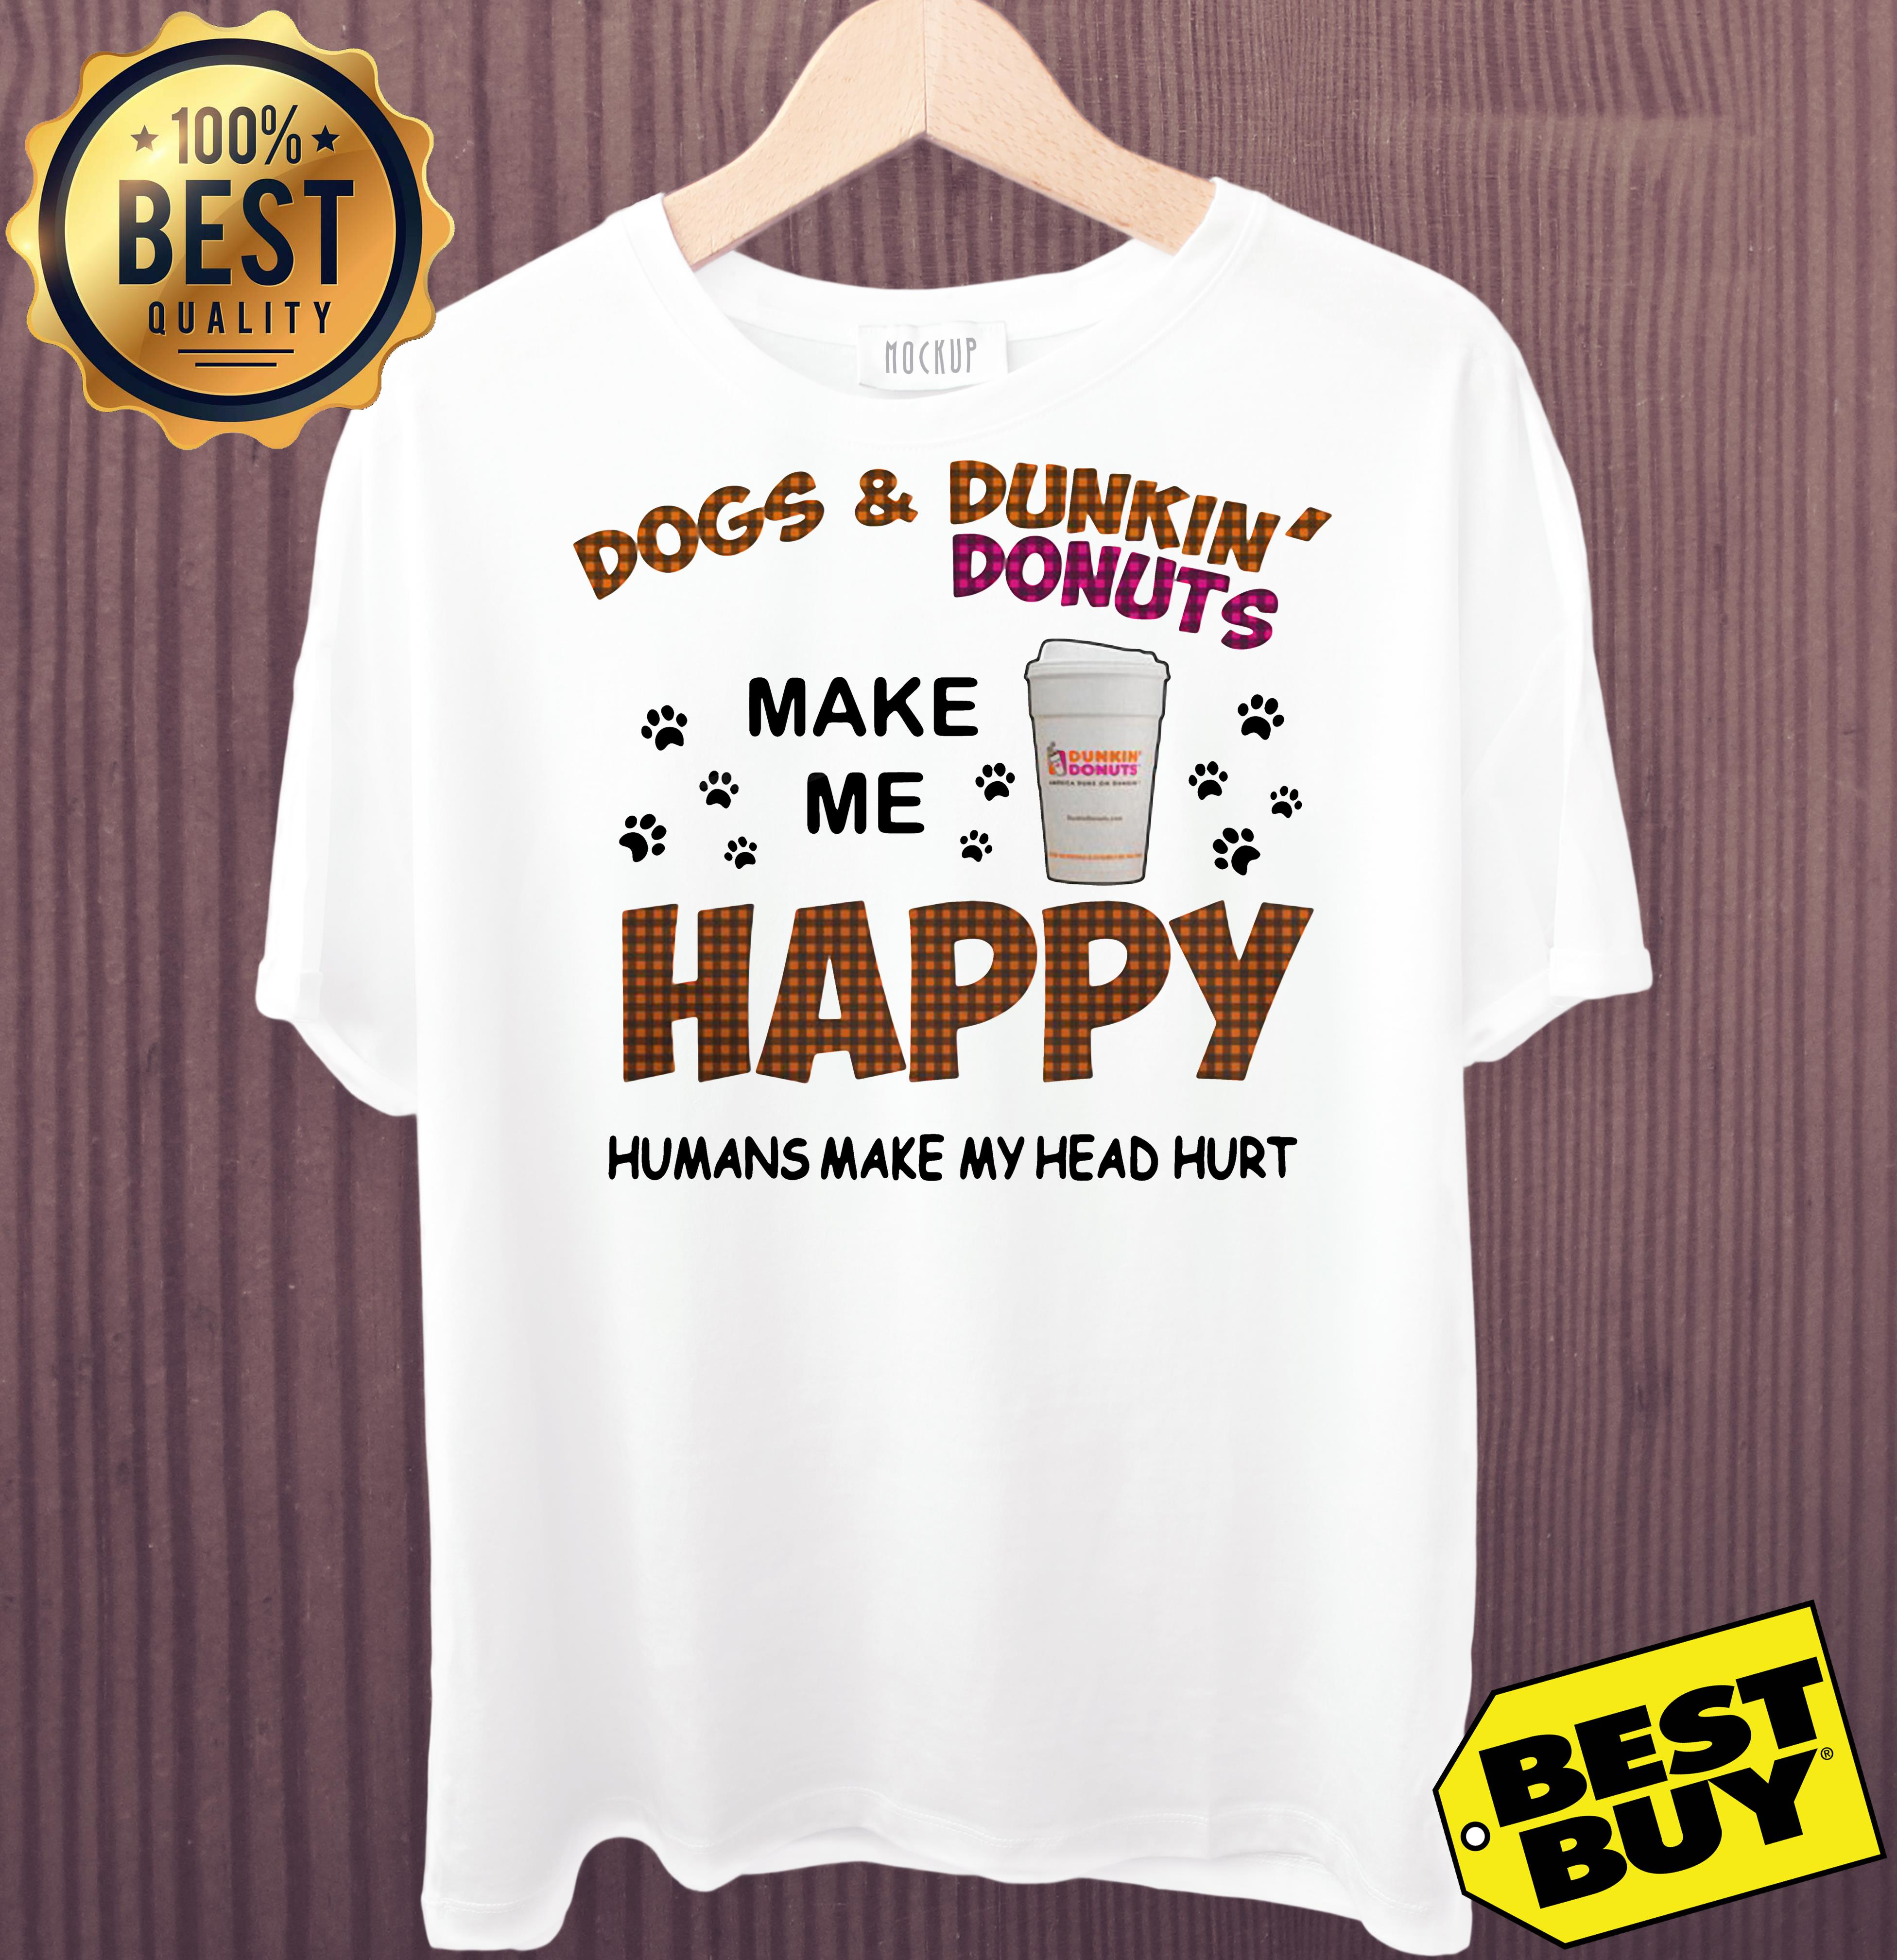 Dogs and dunkin' donuts make me happy humans make my head hurt v-neck